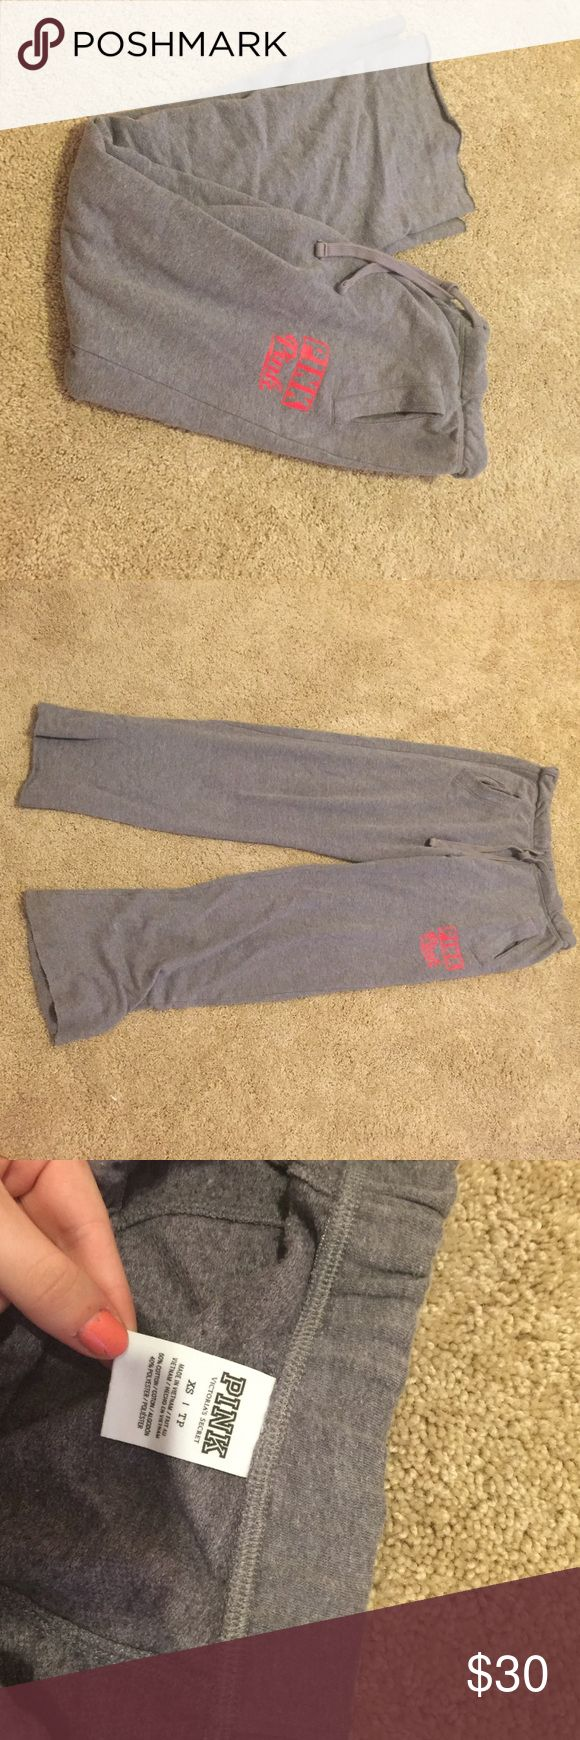 Gray VS PINK boyfriend sweatpants light gray sweatpants. Very comfortable. I only wore them to bed a few times. Great condition PINK Victoria's Secret Pants